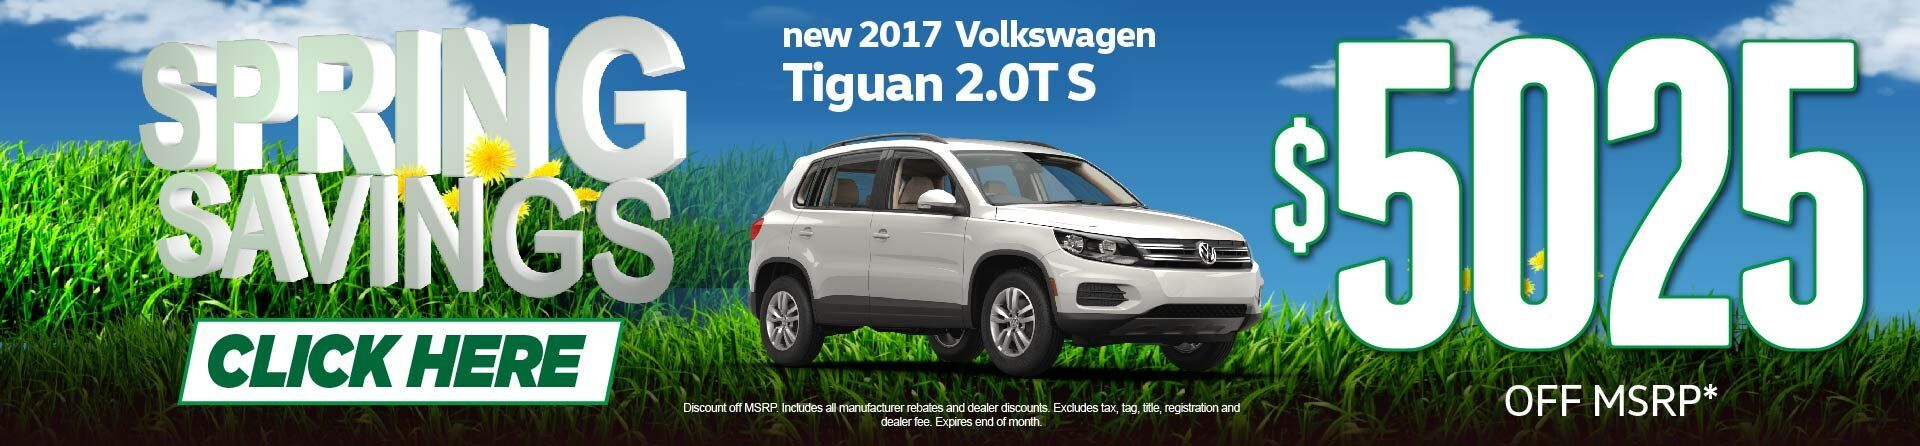 Spring Savings - Tiguan